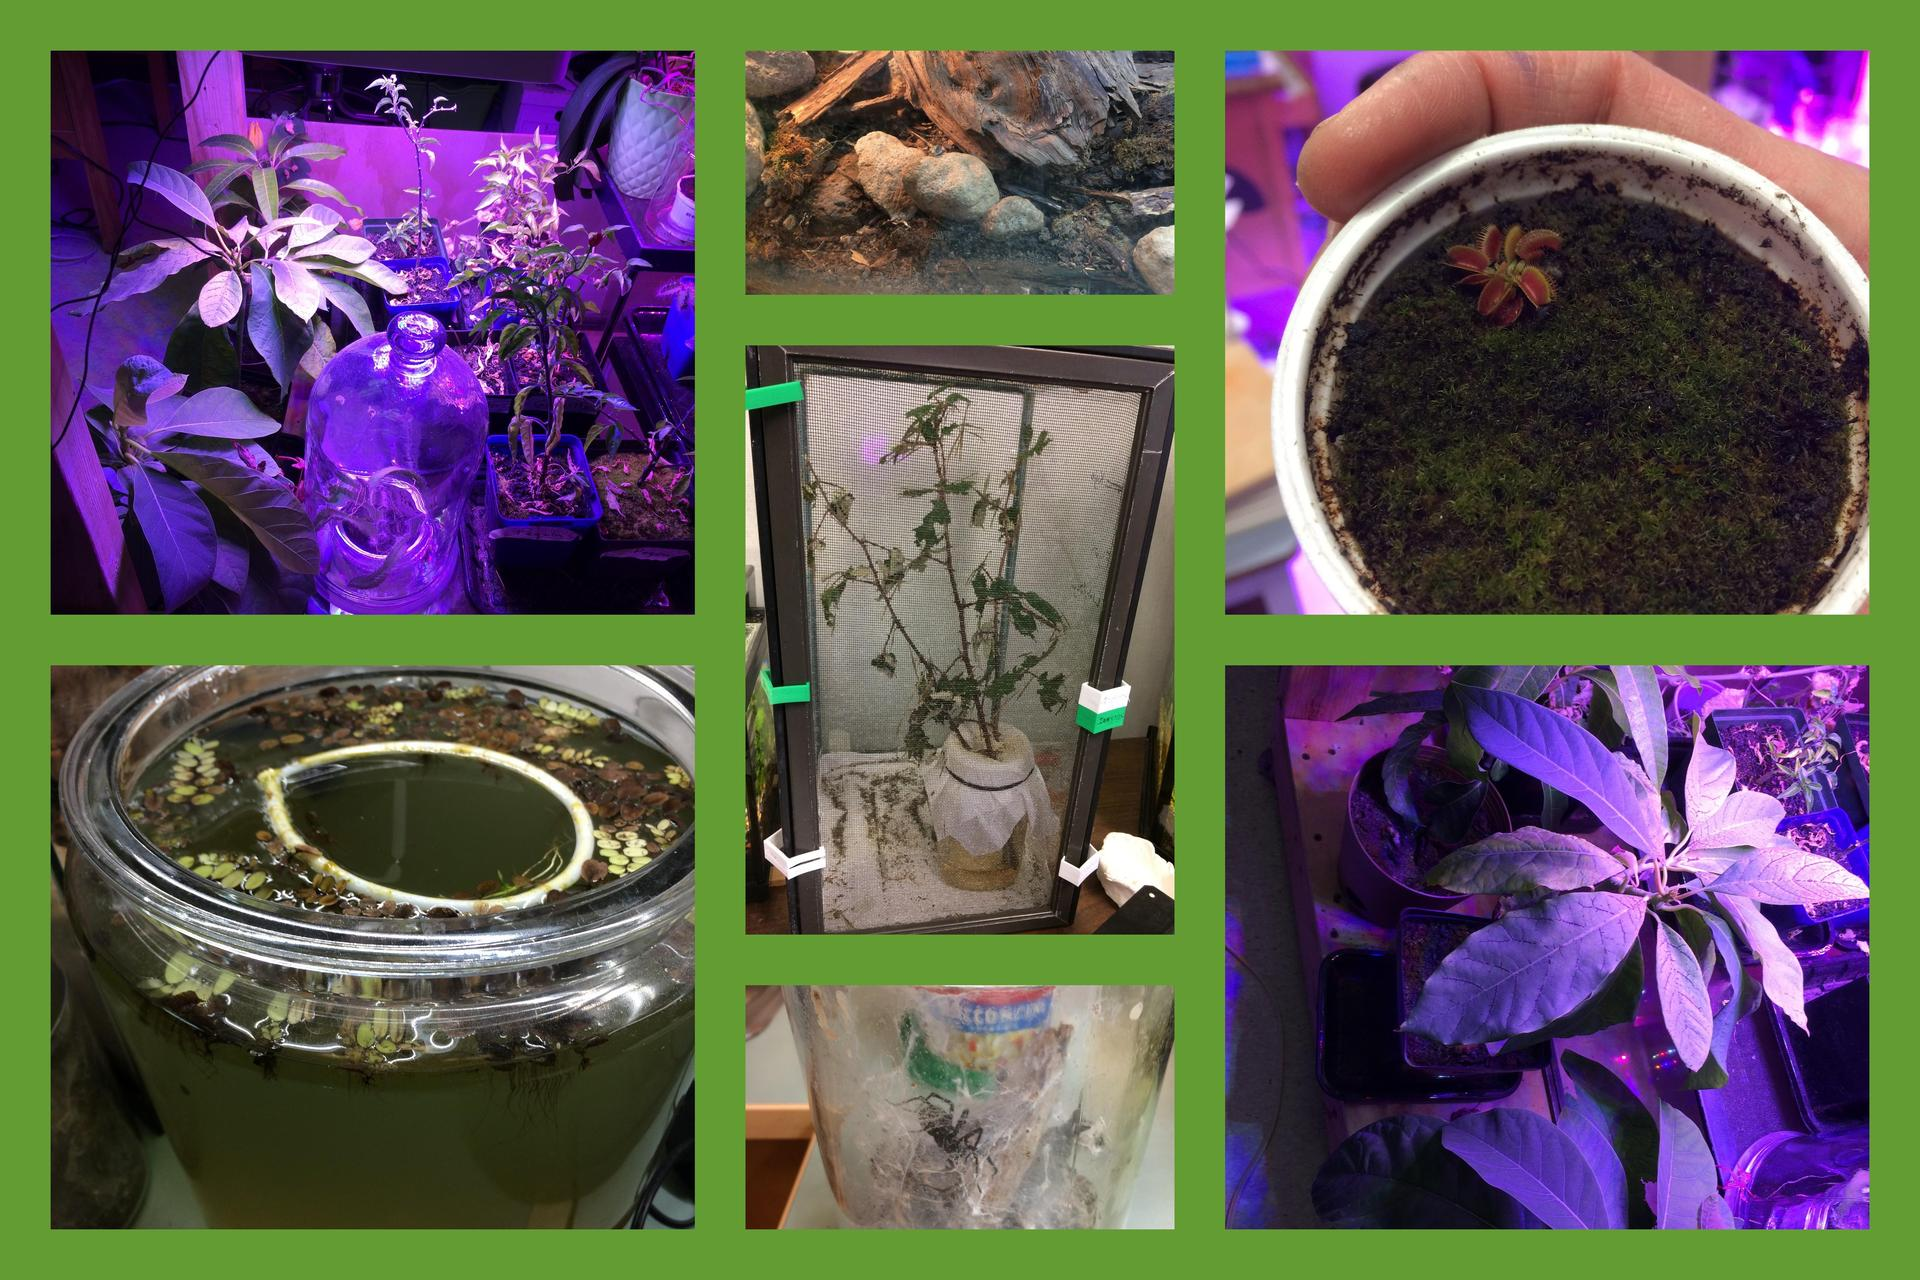 plants and pets collage